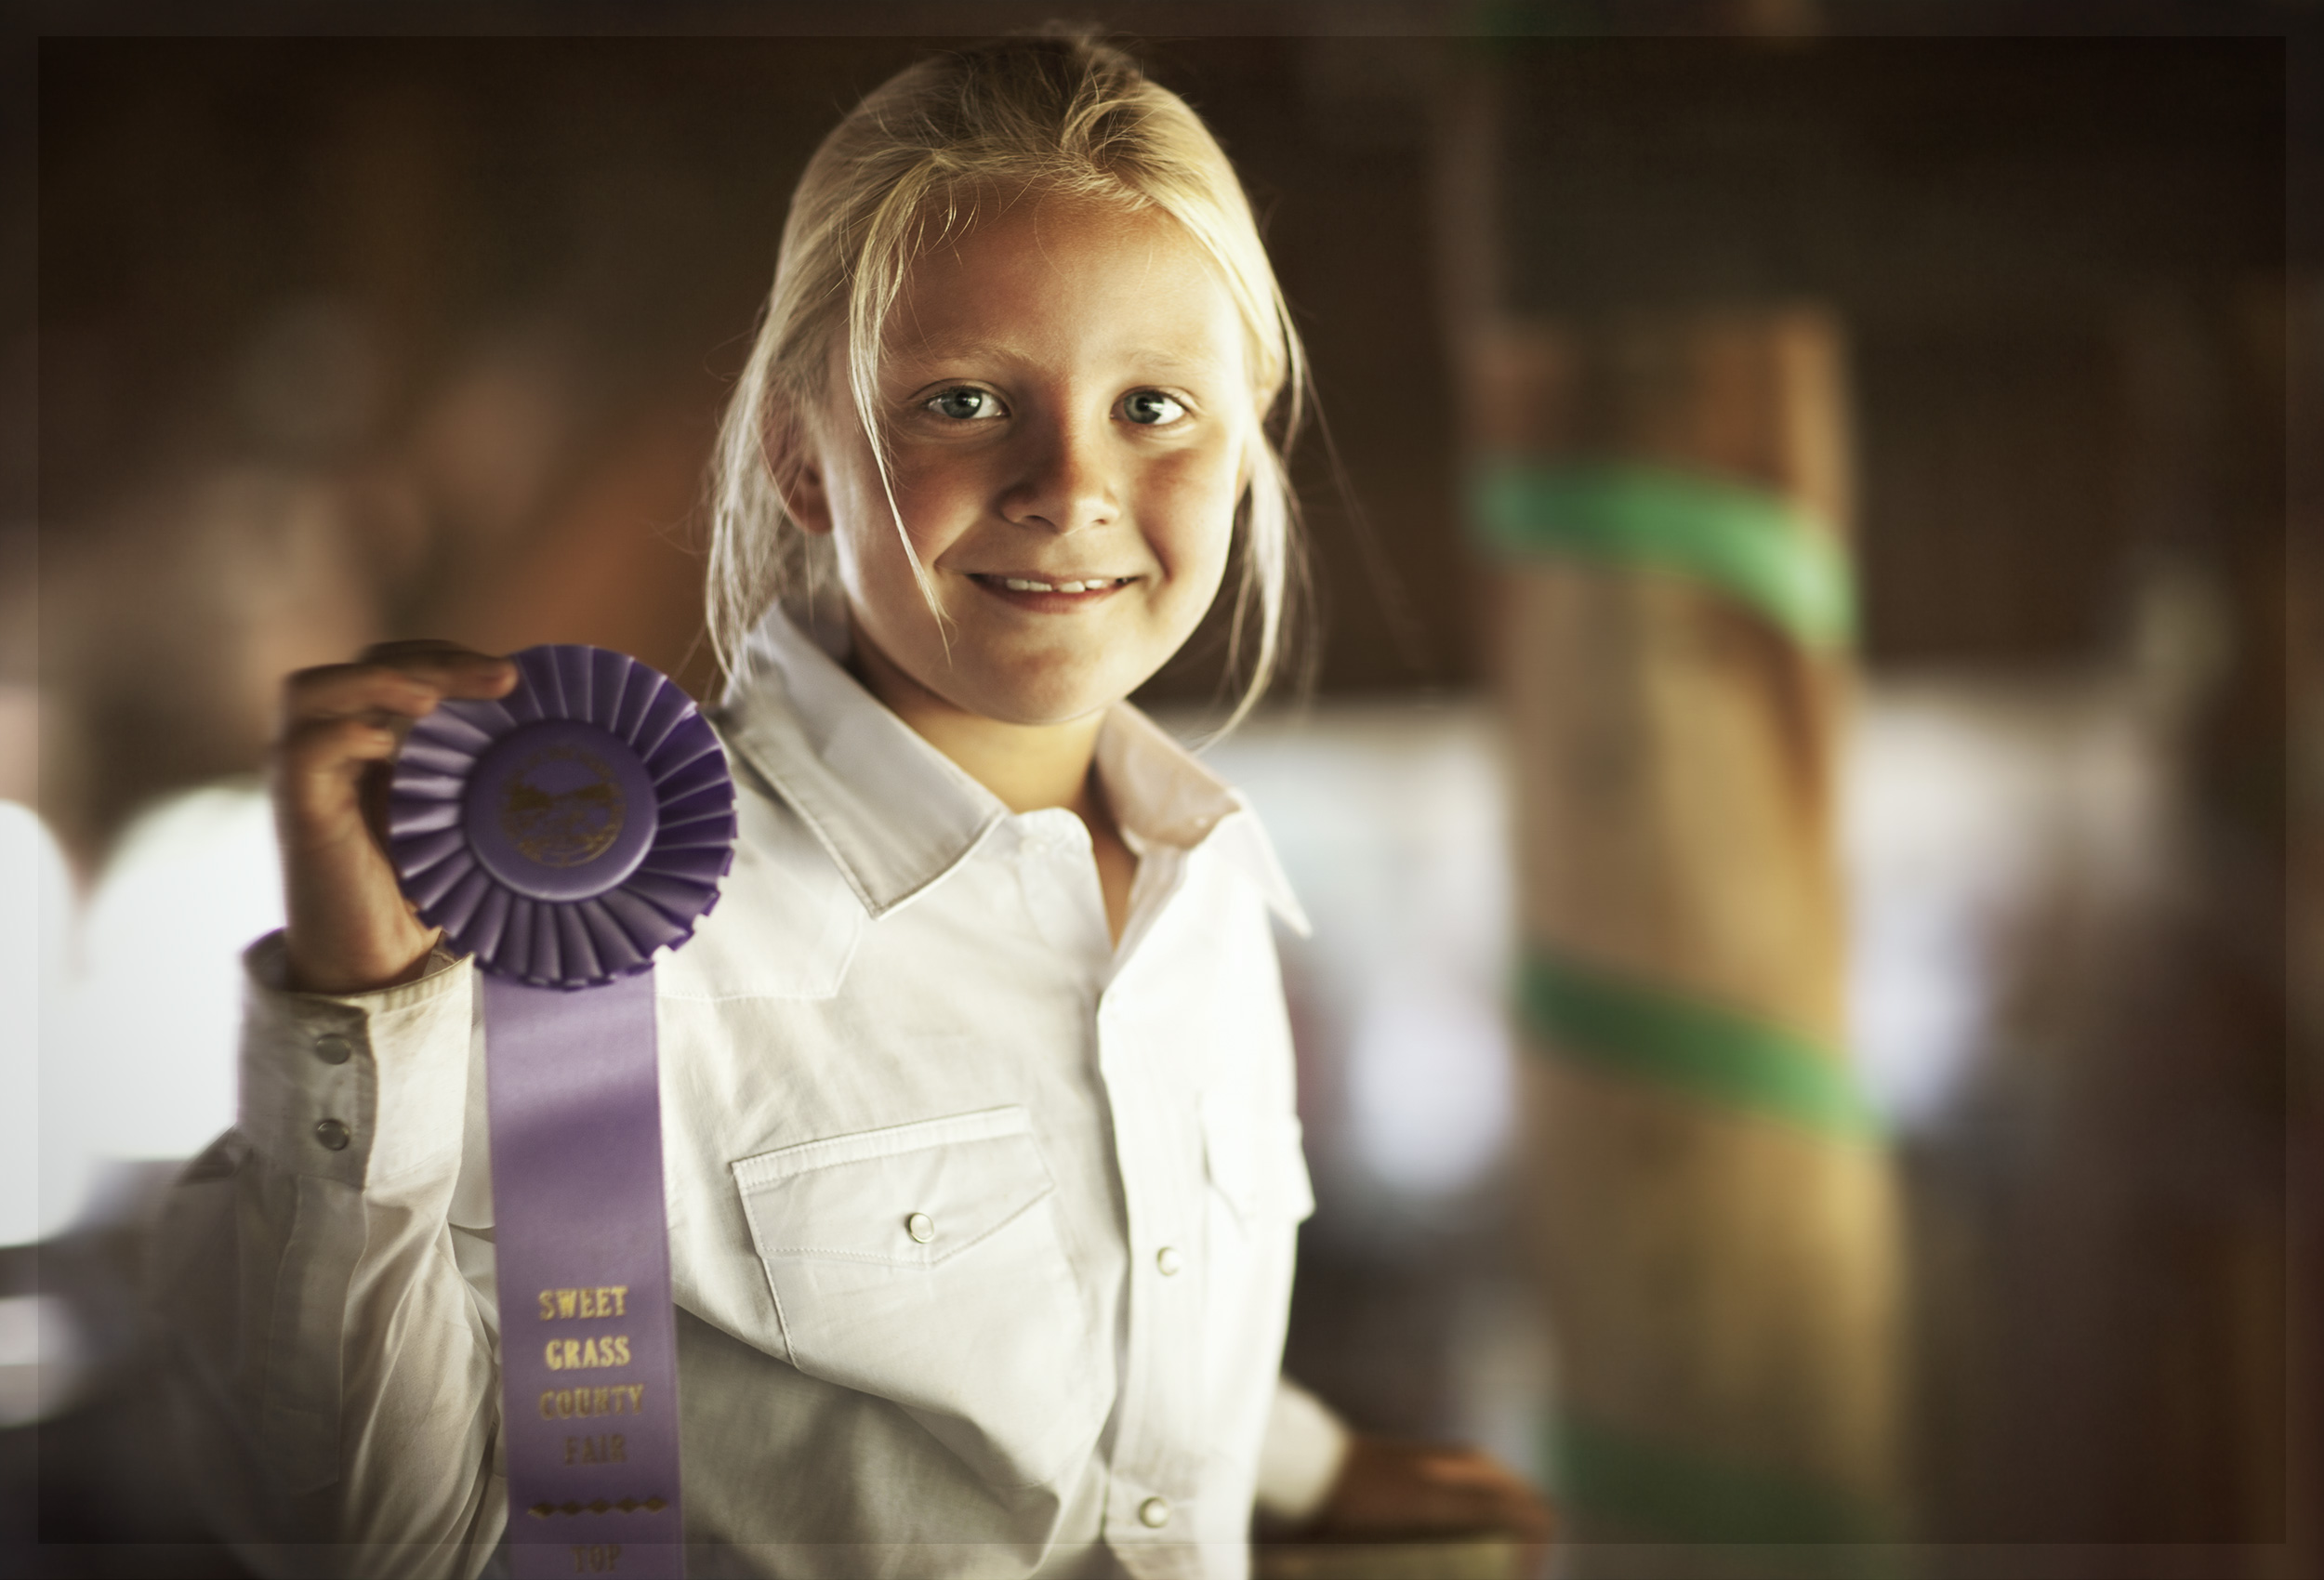 4H Participant at the Sweet Grass County Fair in Big Timber, Montana